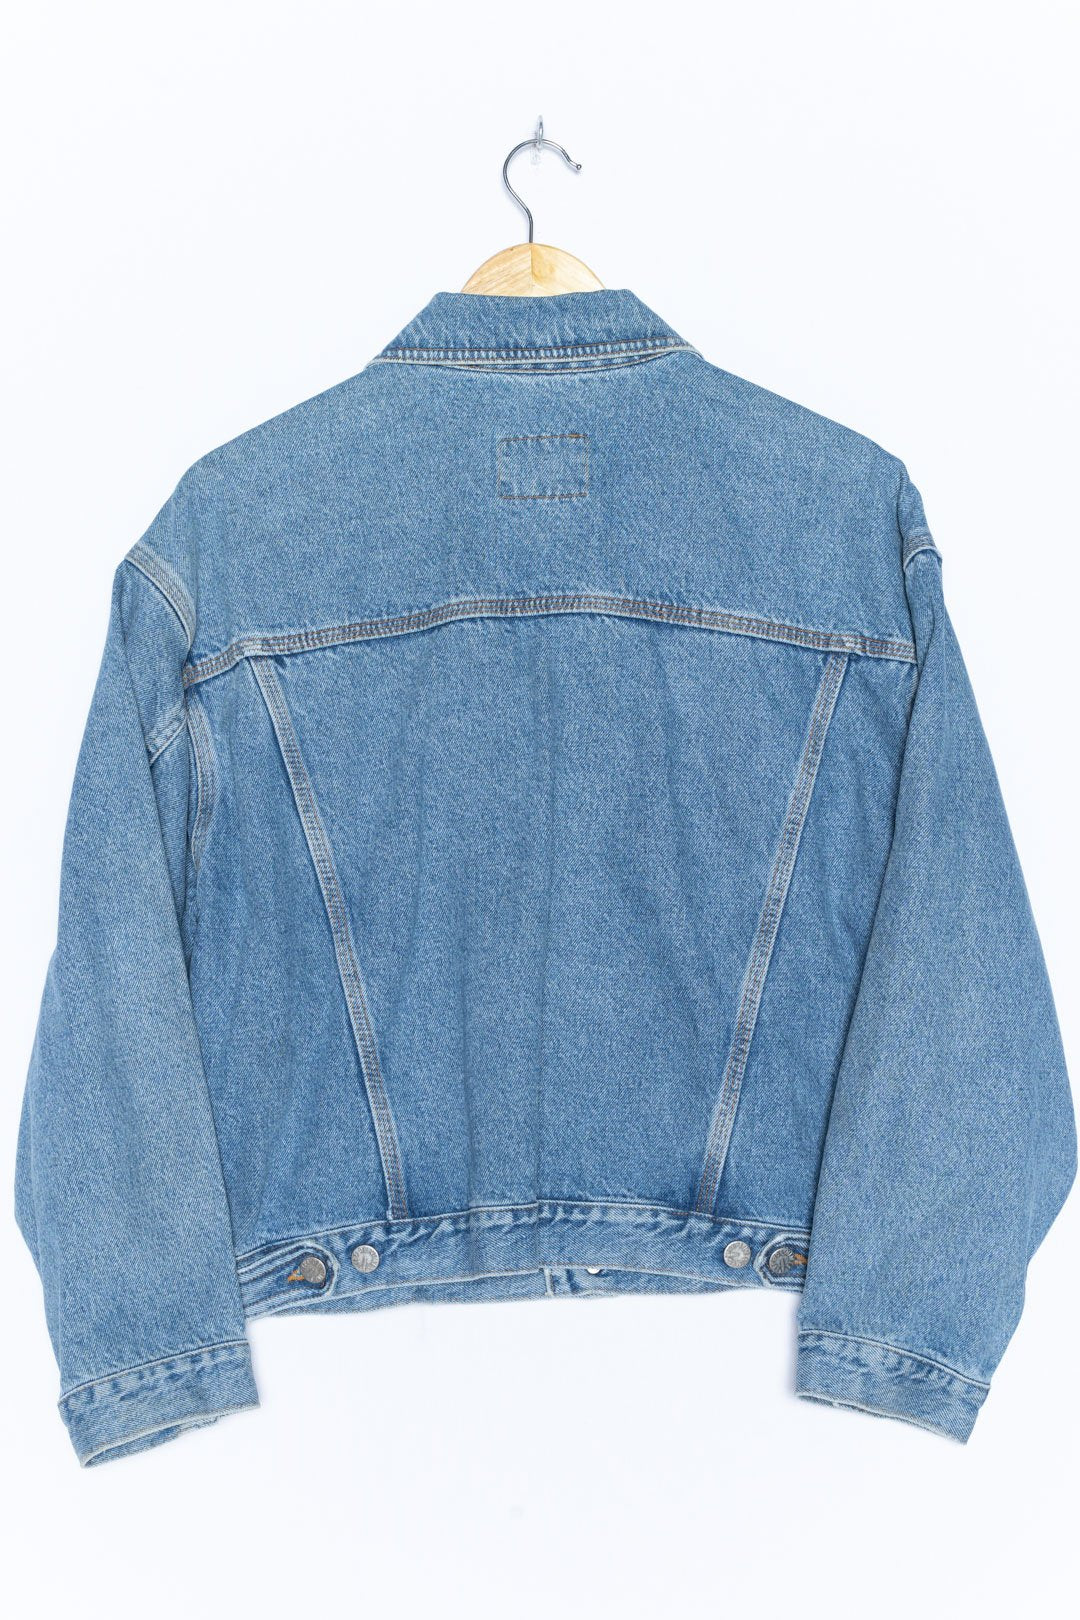 Light Blue Denim Jacket S - VinoKilo.com